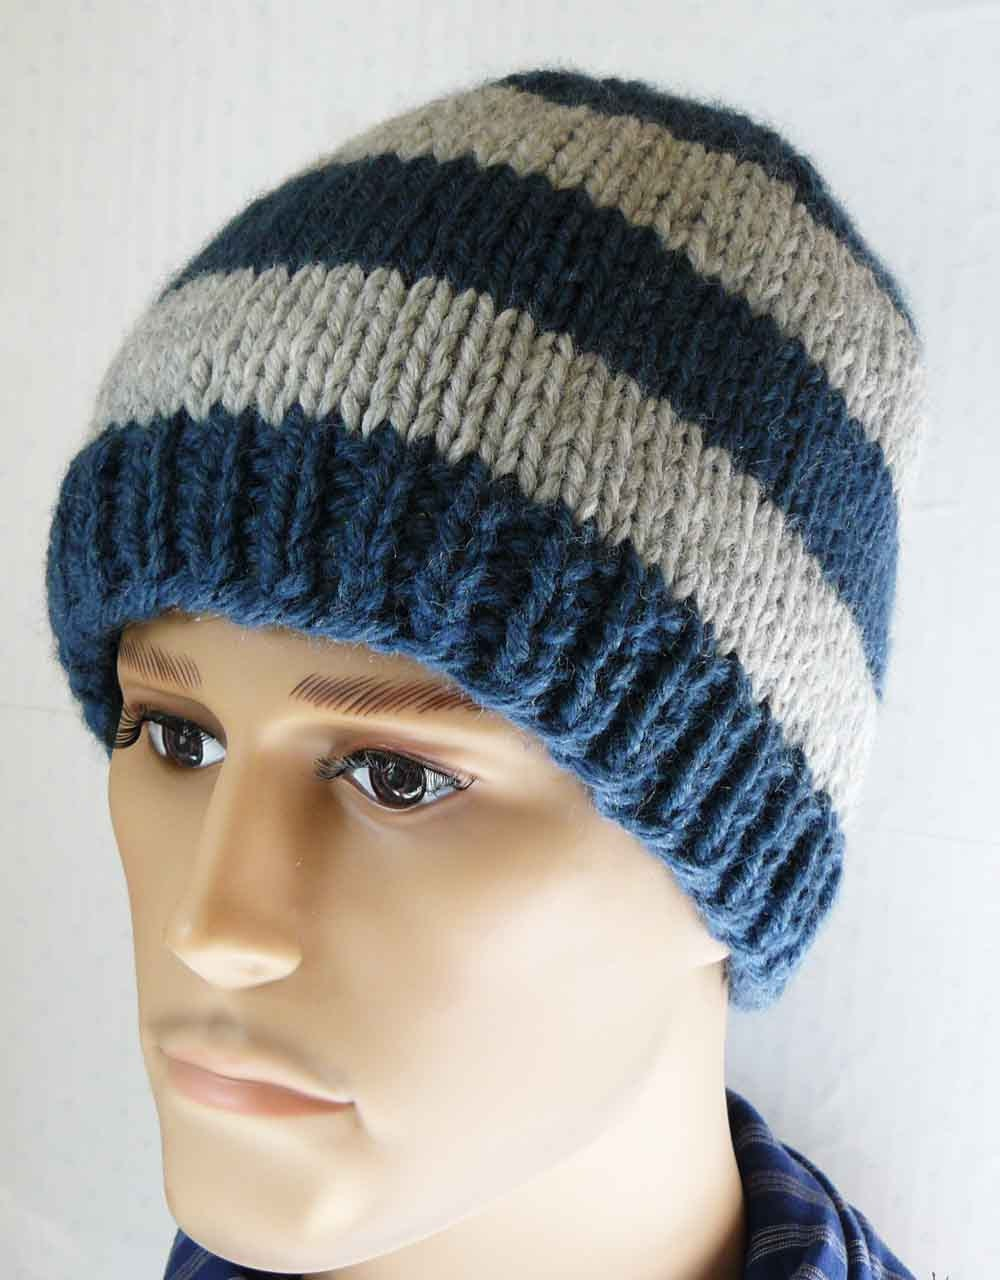 Knitting pattern knit beanie pattern mens knit hats patterns this is a digital file bankloansurffo Gallery